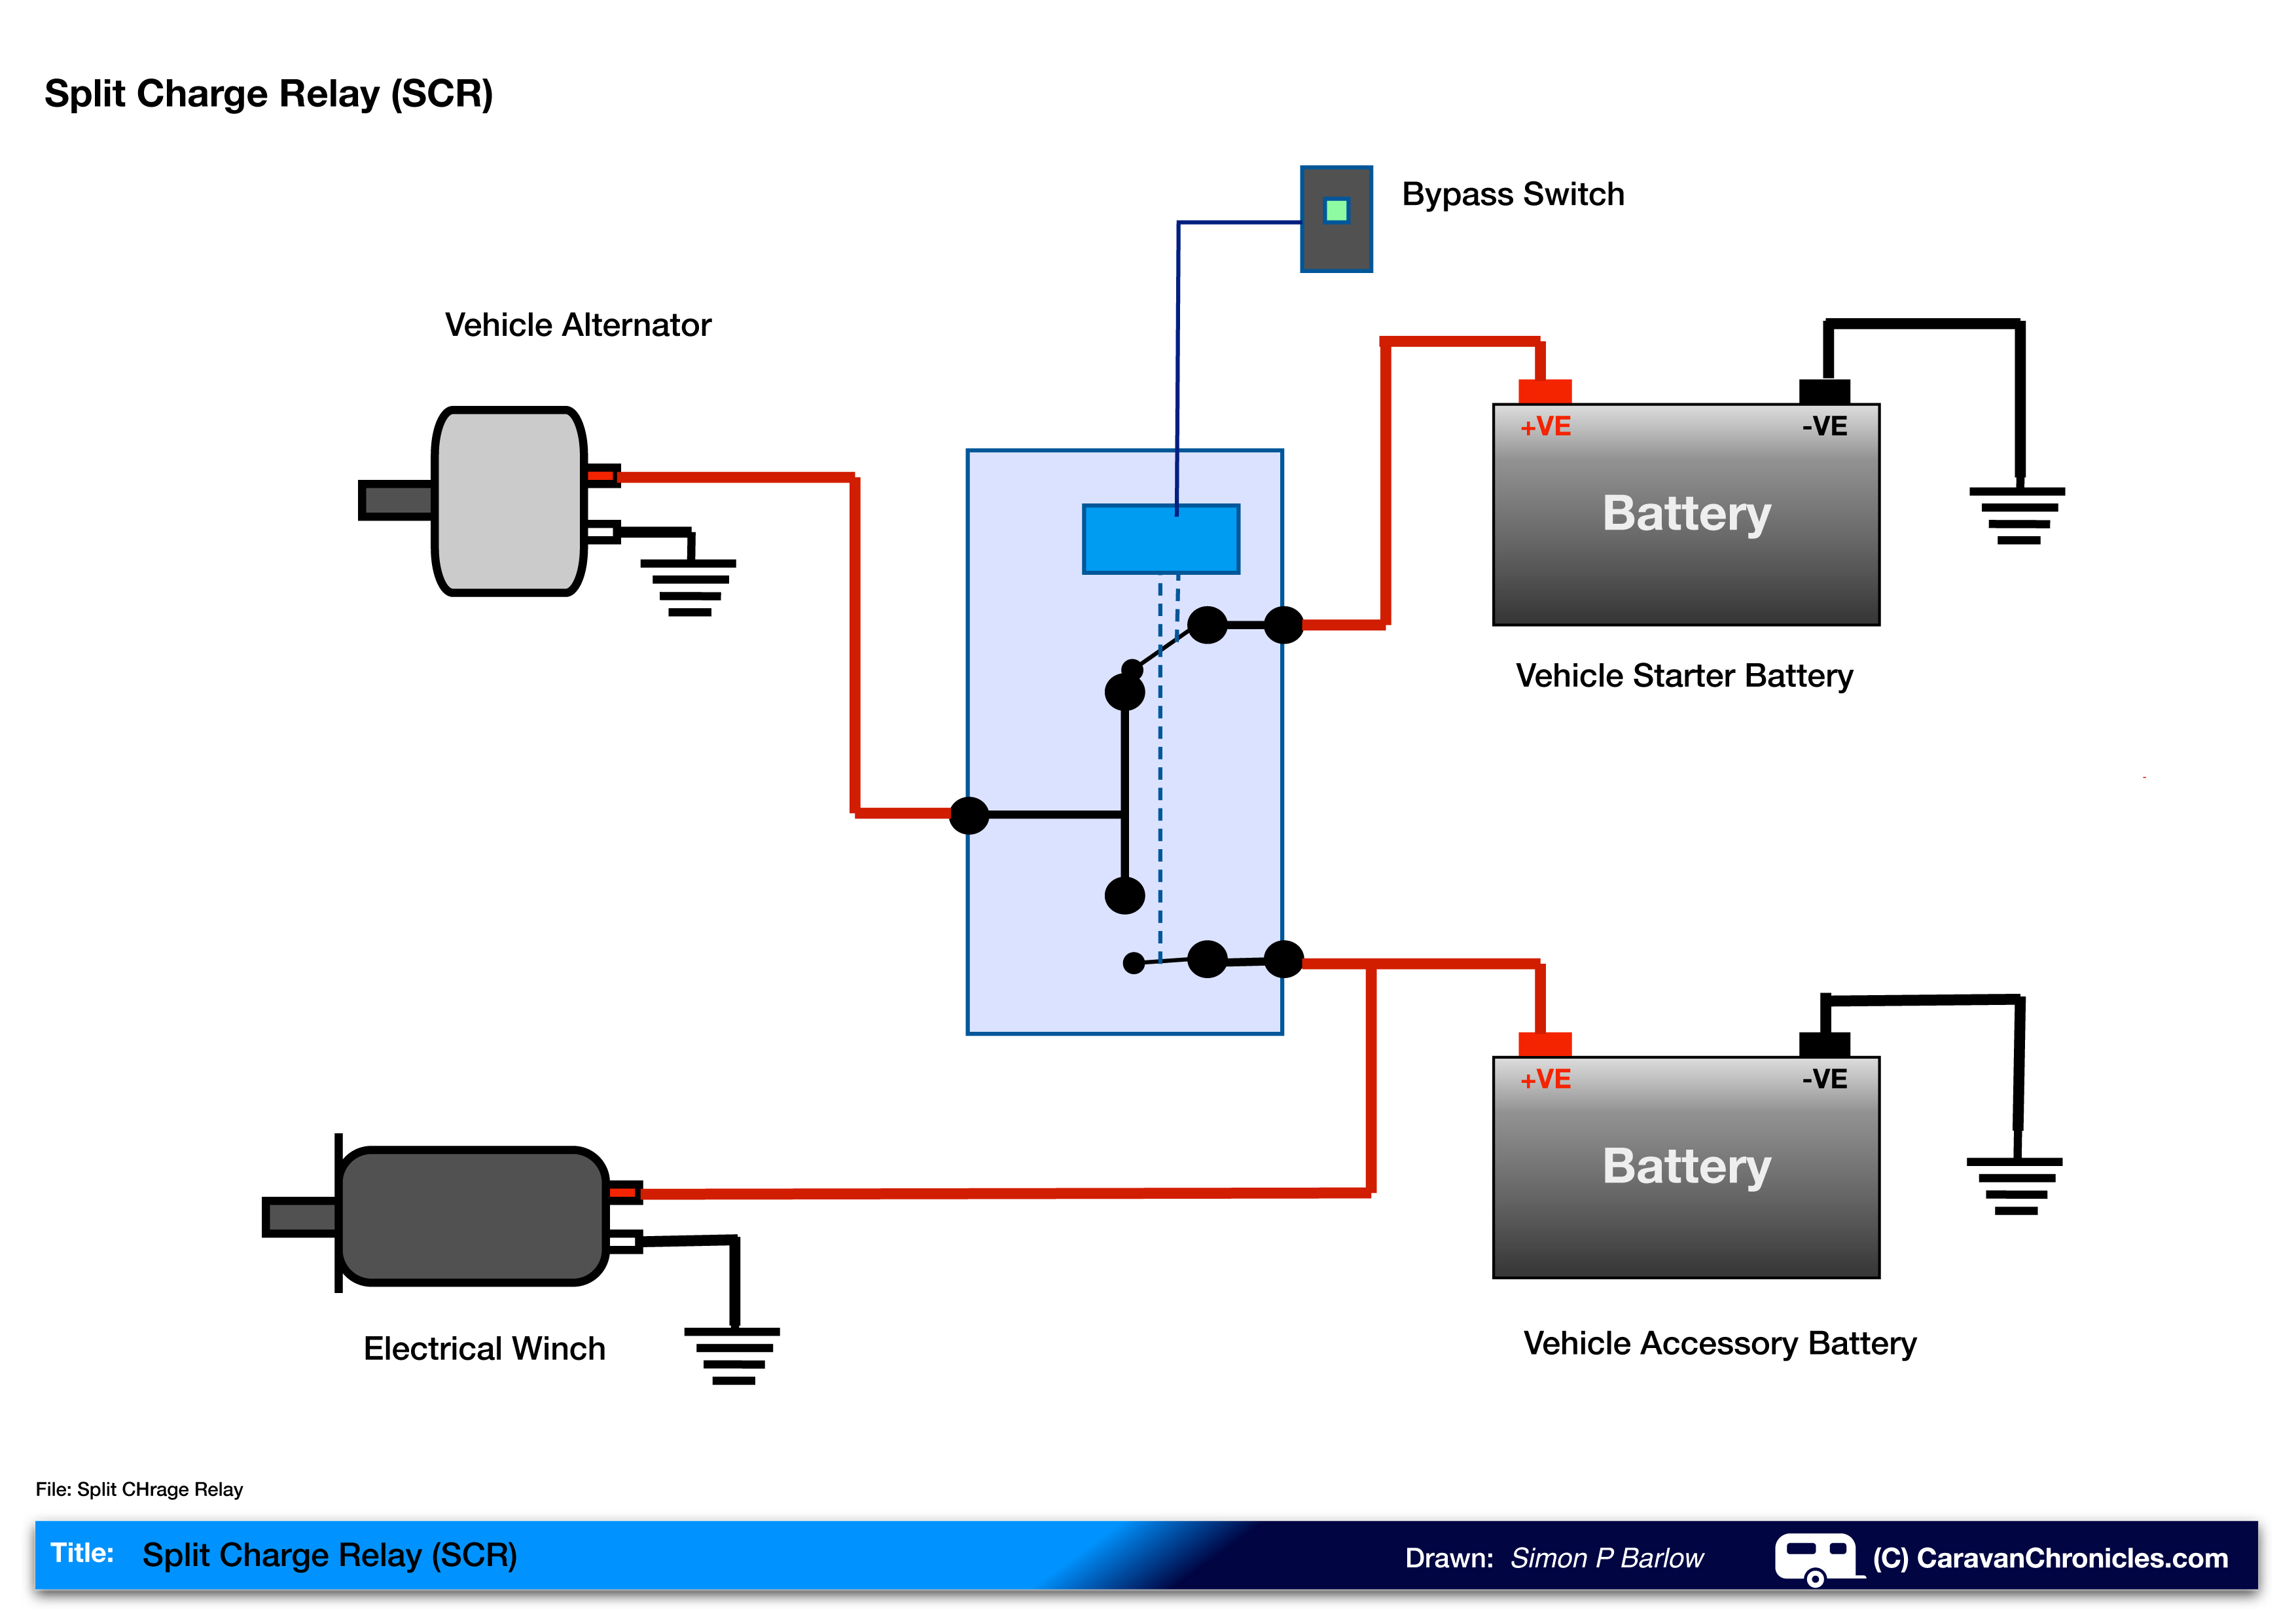 bypass relay wiring diagram ht 3629  wiring a voltage sensitive relay free diagram  wiring a voltage sensitive relay free